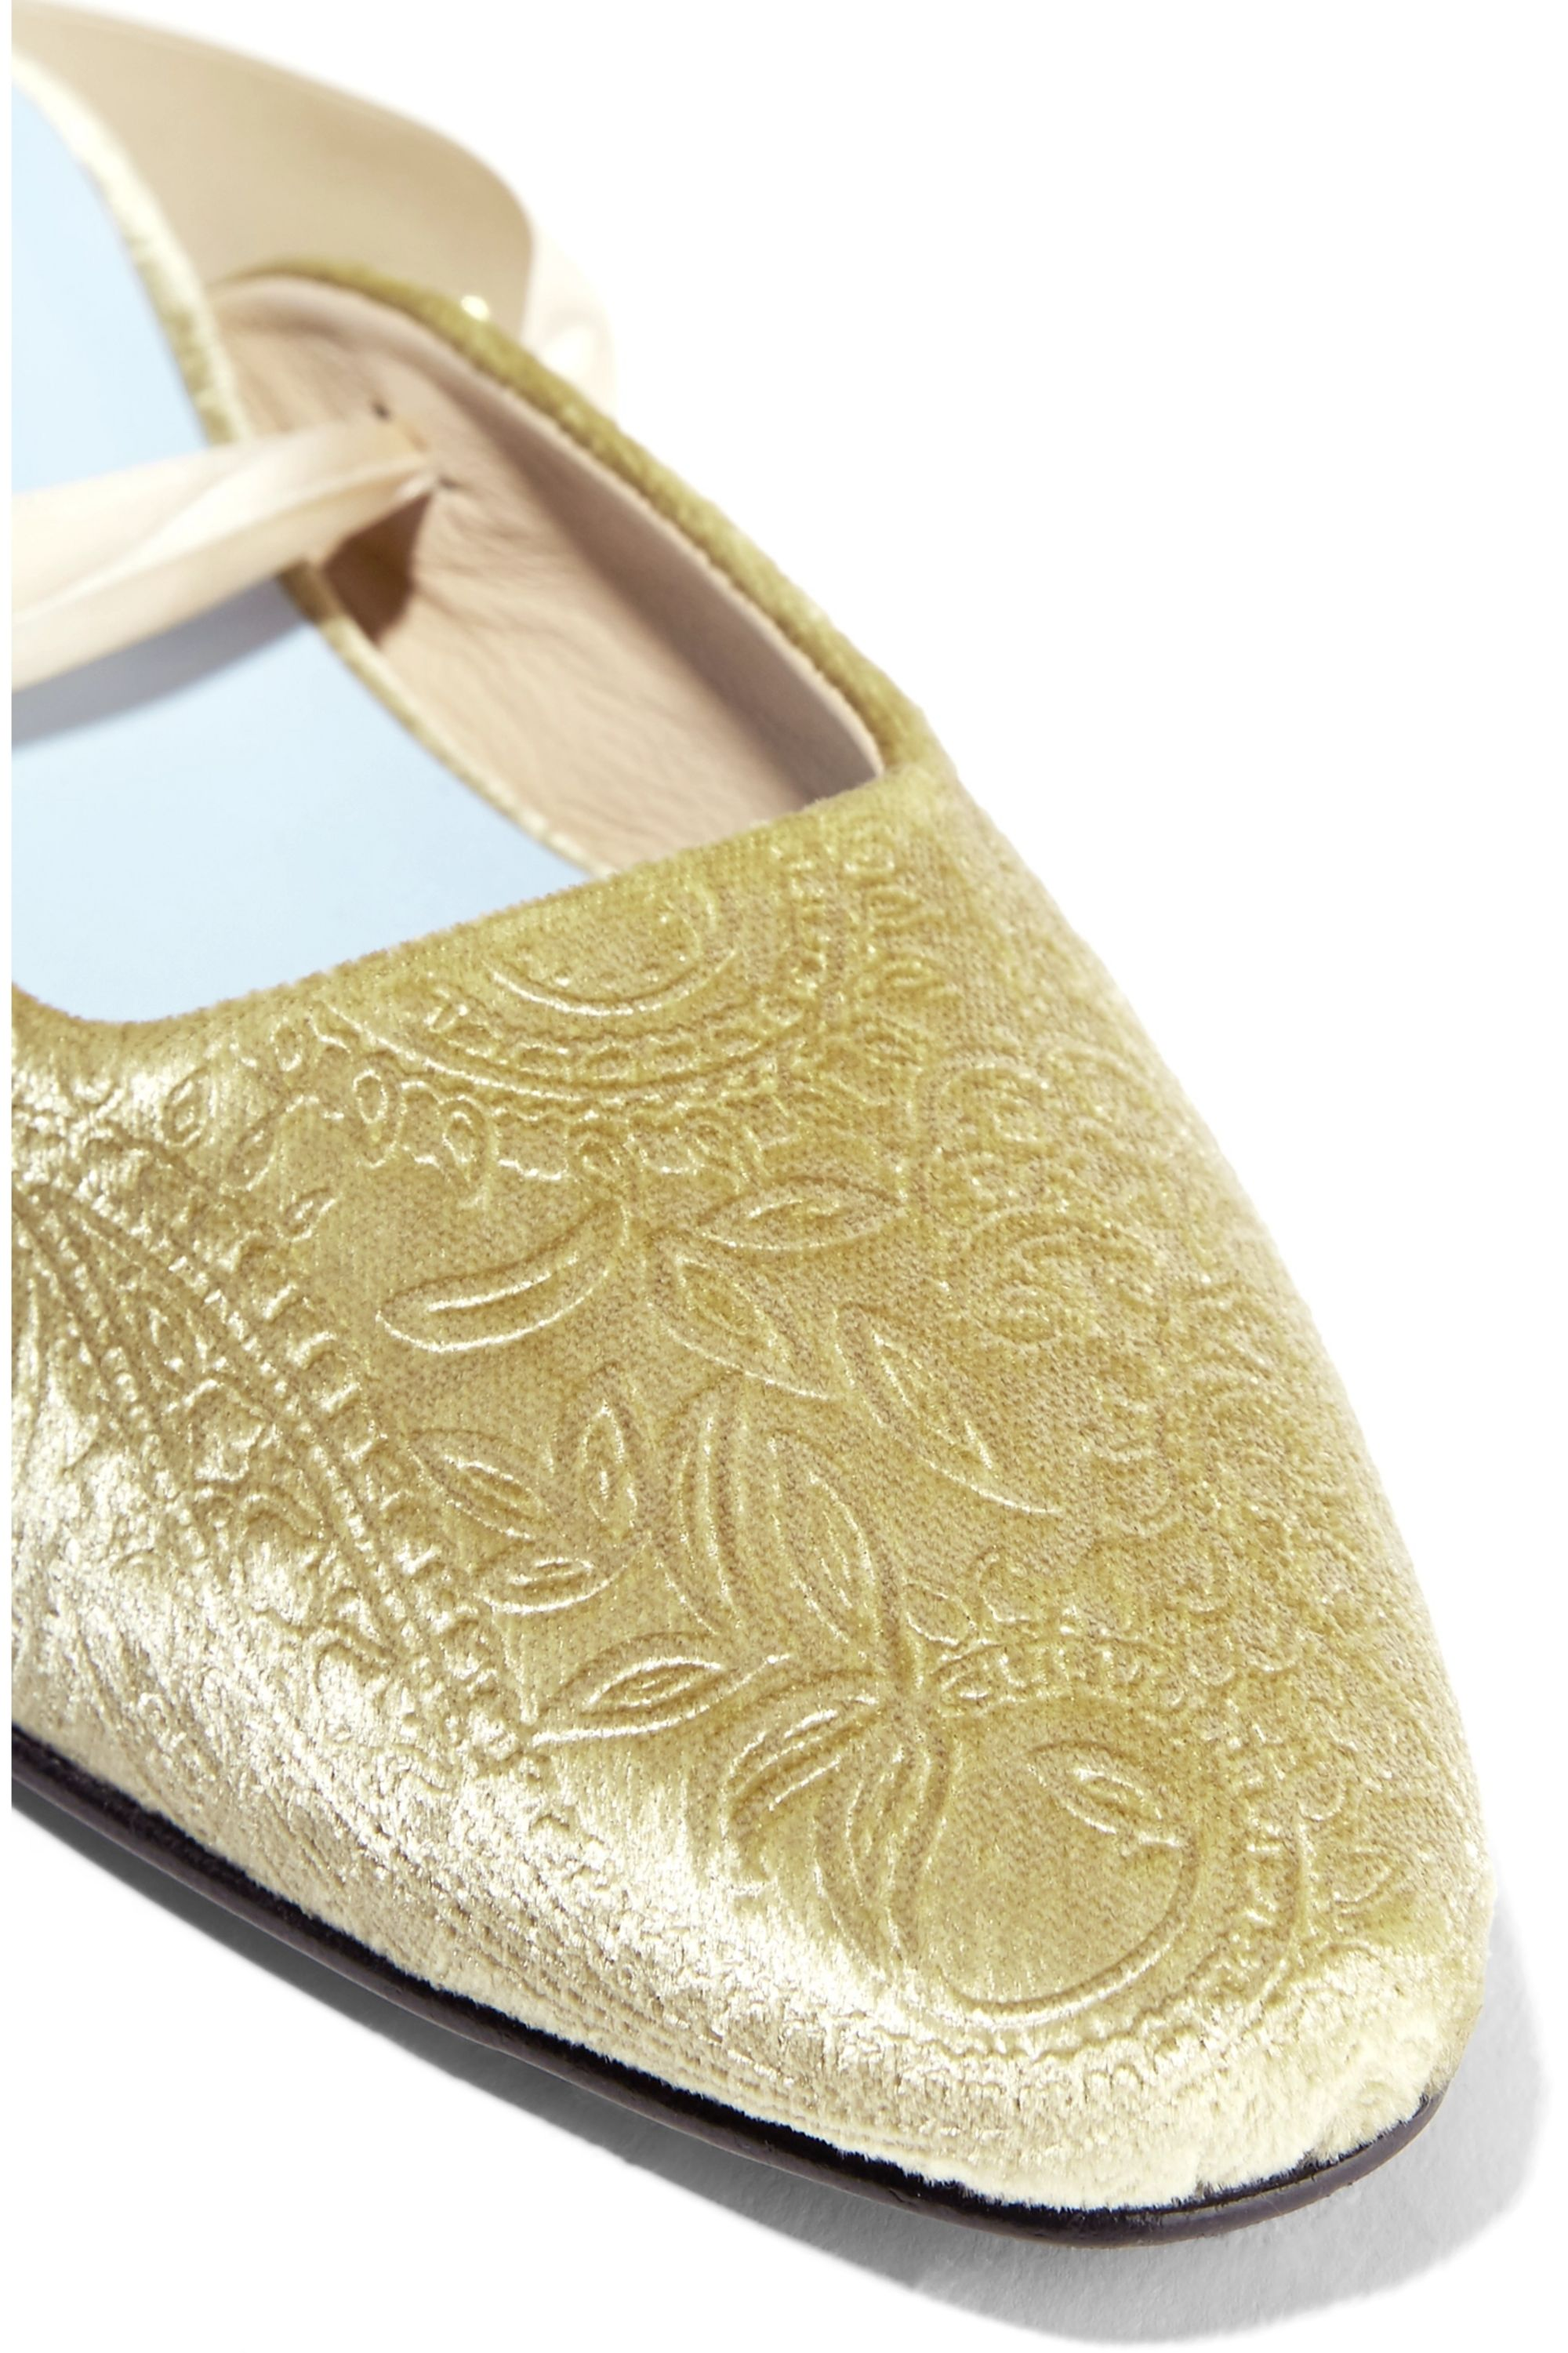 MR by Man Repeller The Morning After embossed velvet flats